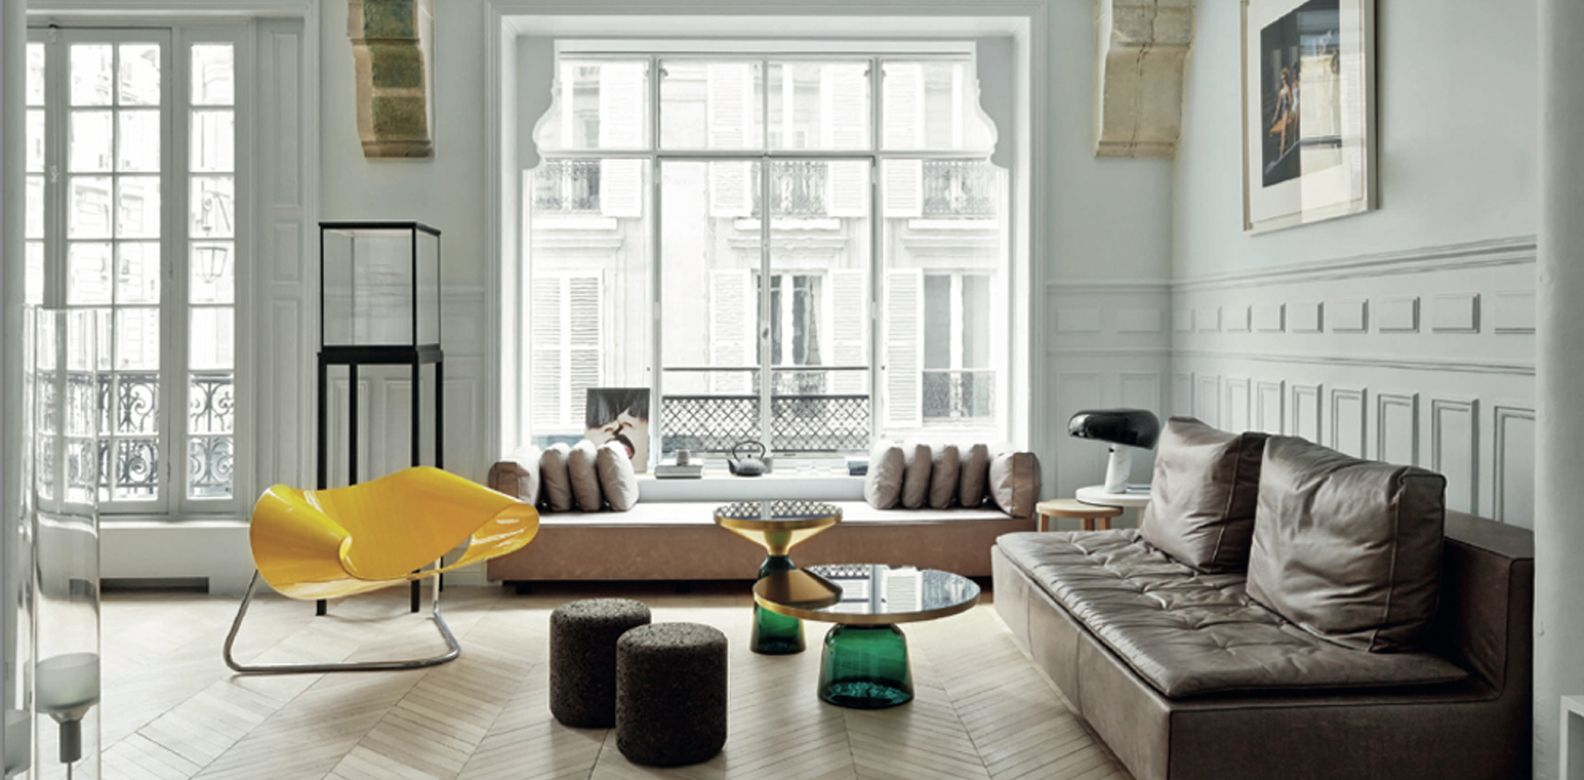 5 Things The French Can Teach Us About Home Decor Hong